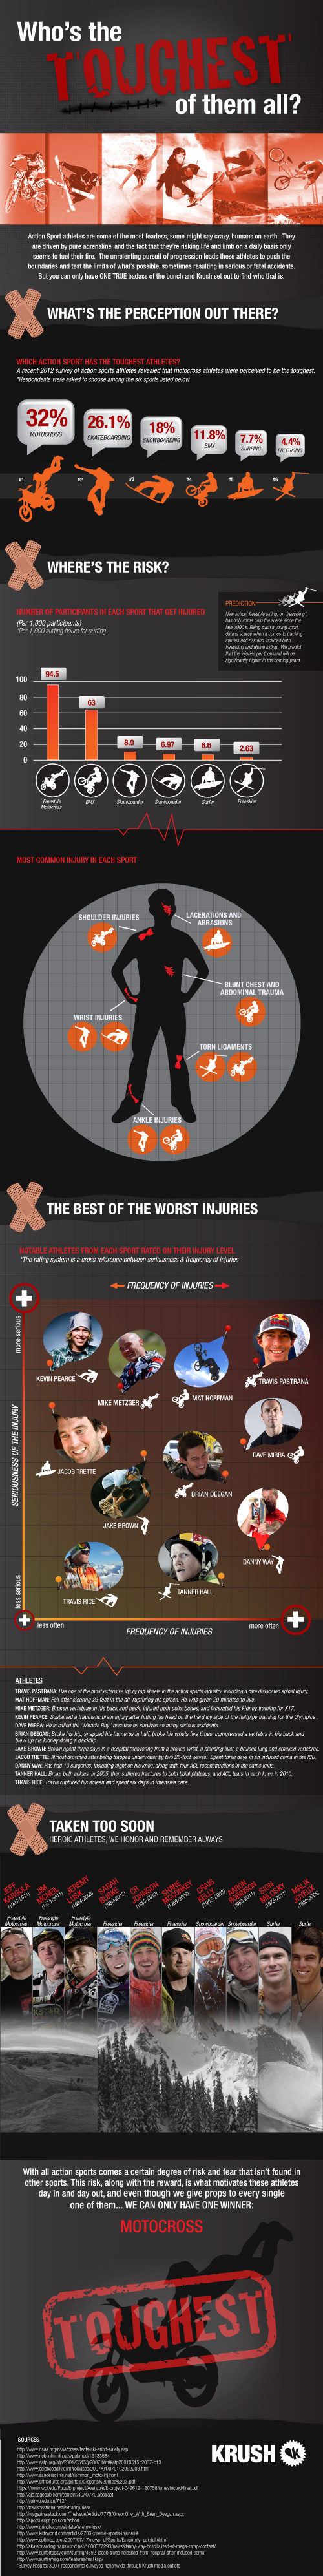 Extreme Sports Athletes - Who Are The Toughest Ones?